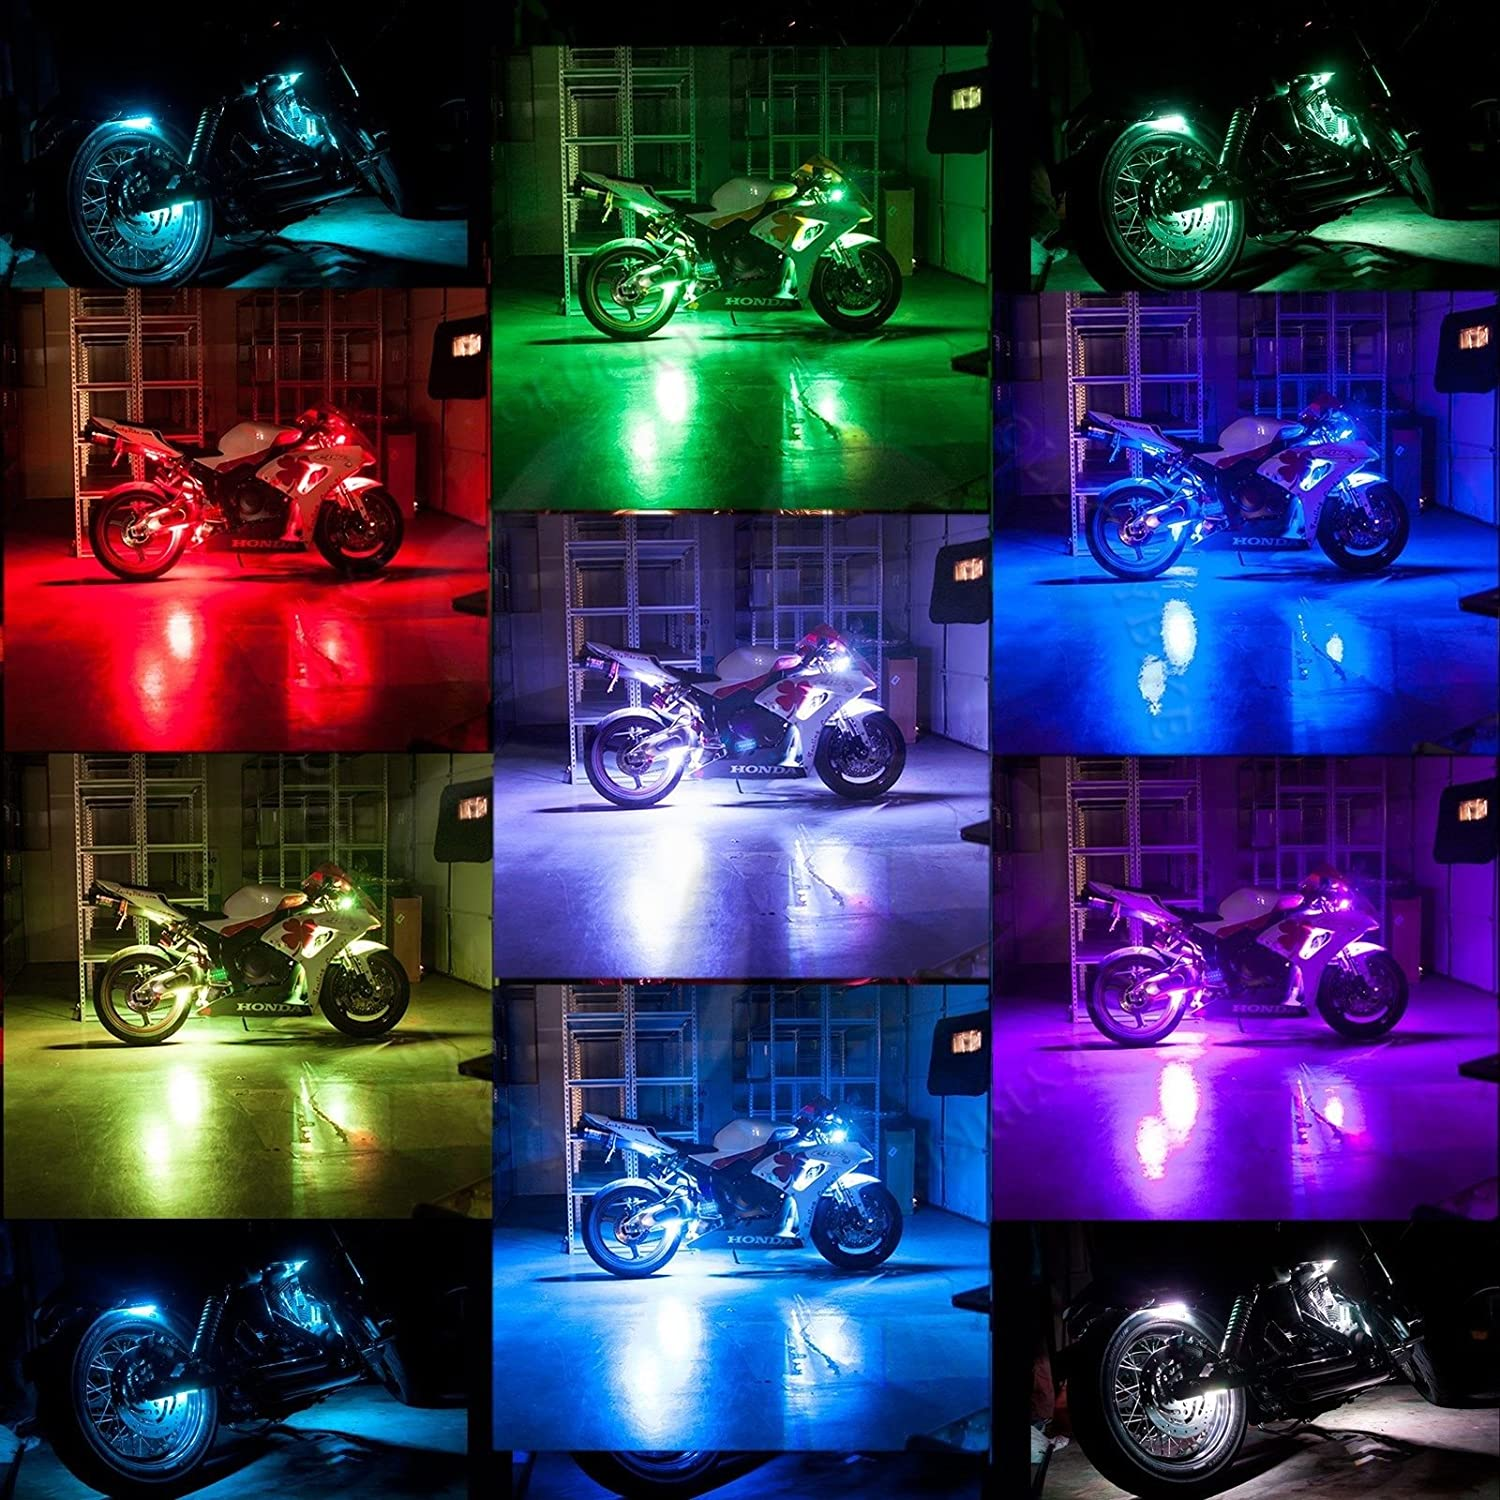 glow leds motorcycle com s showthread this harley see your led road forums original page lights image let the lighting report